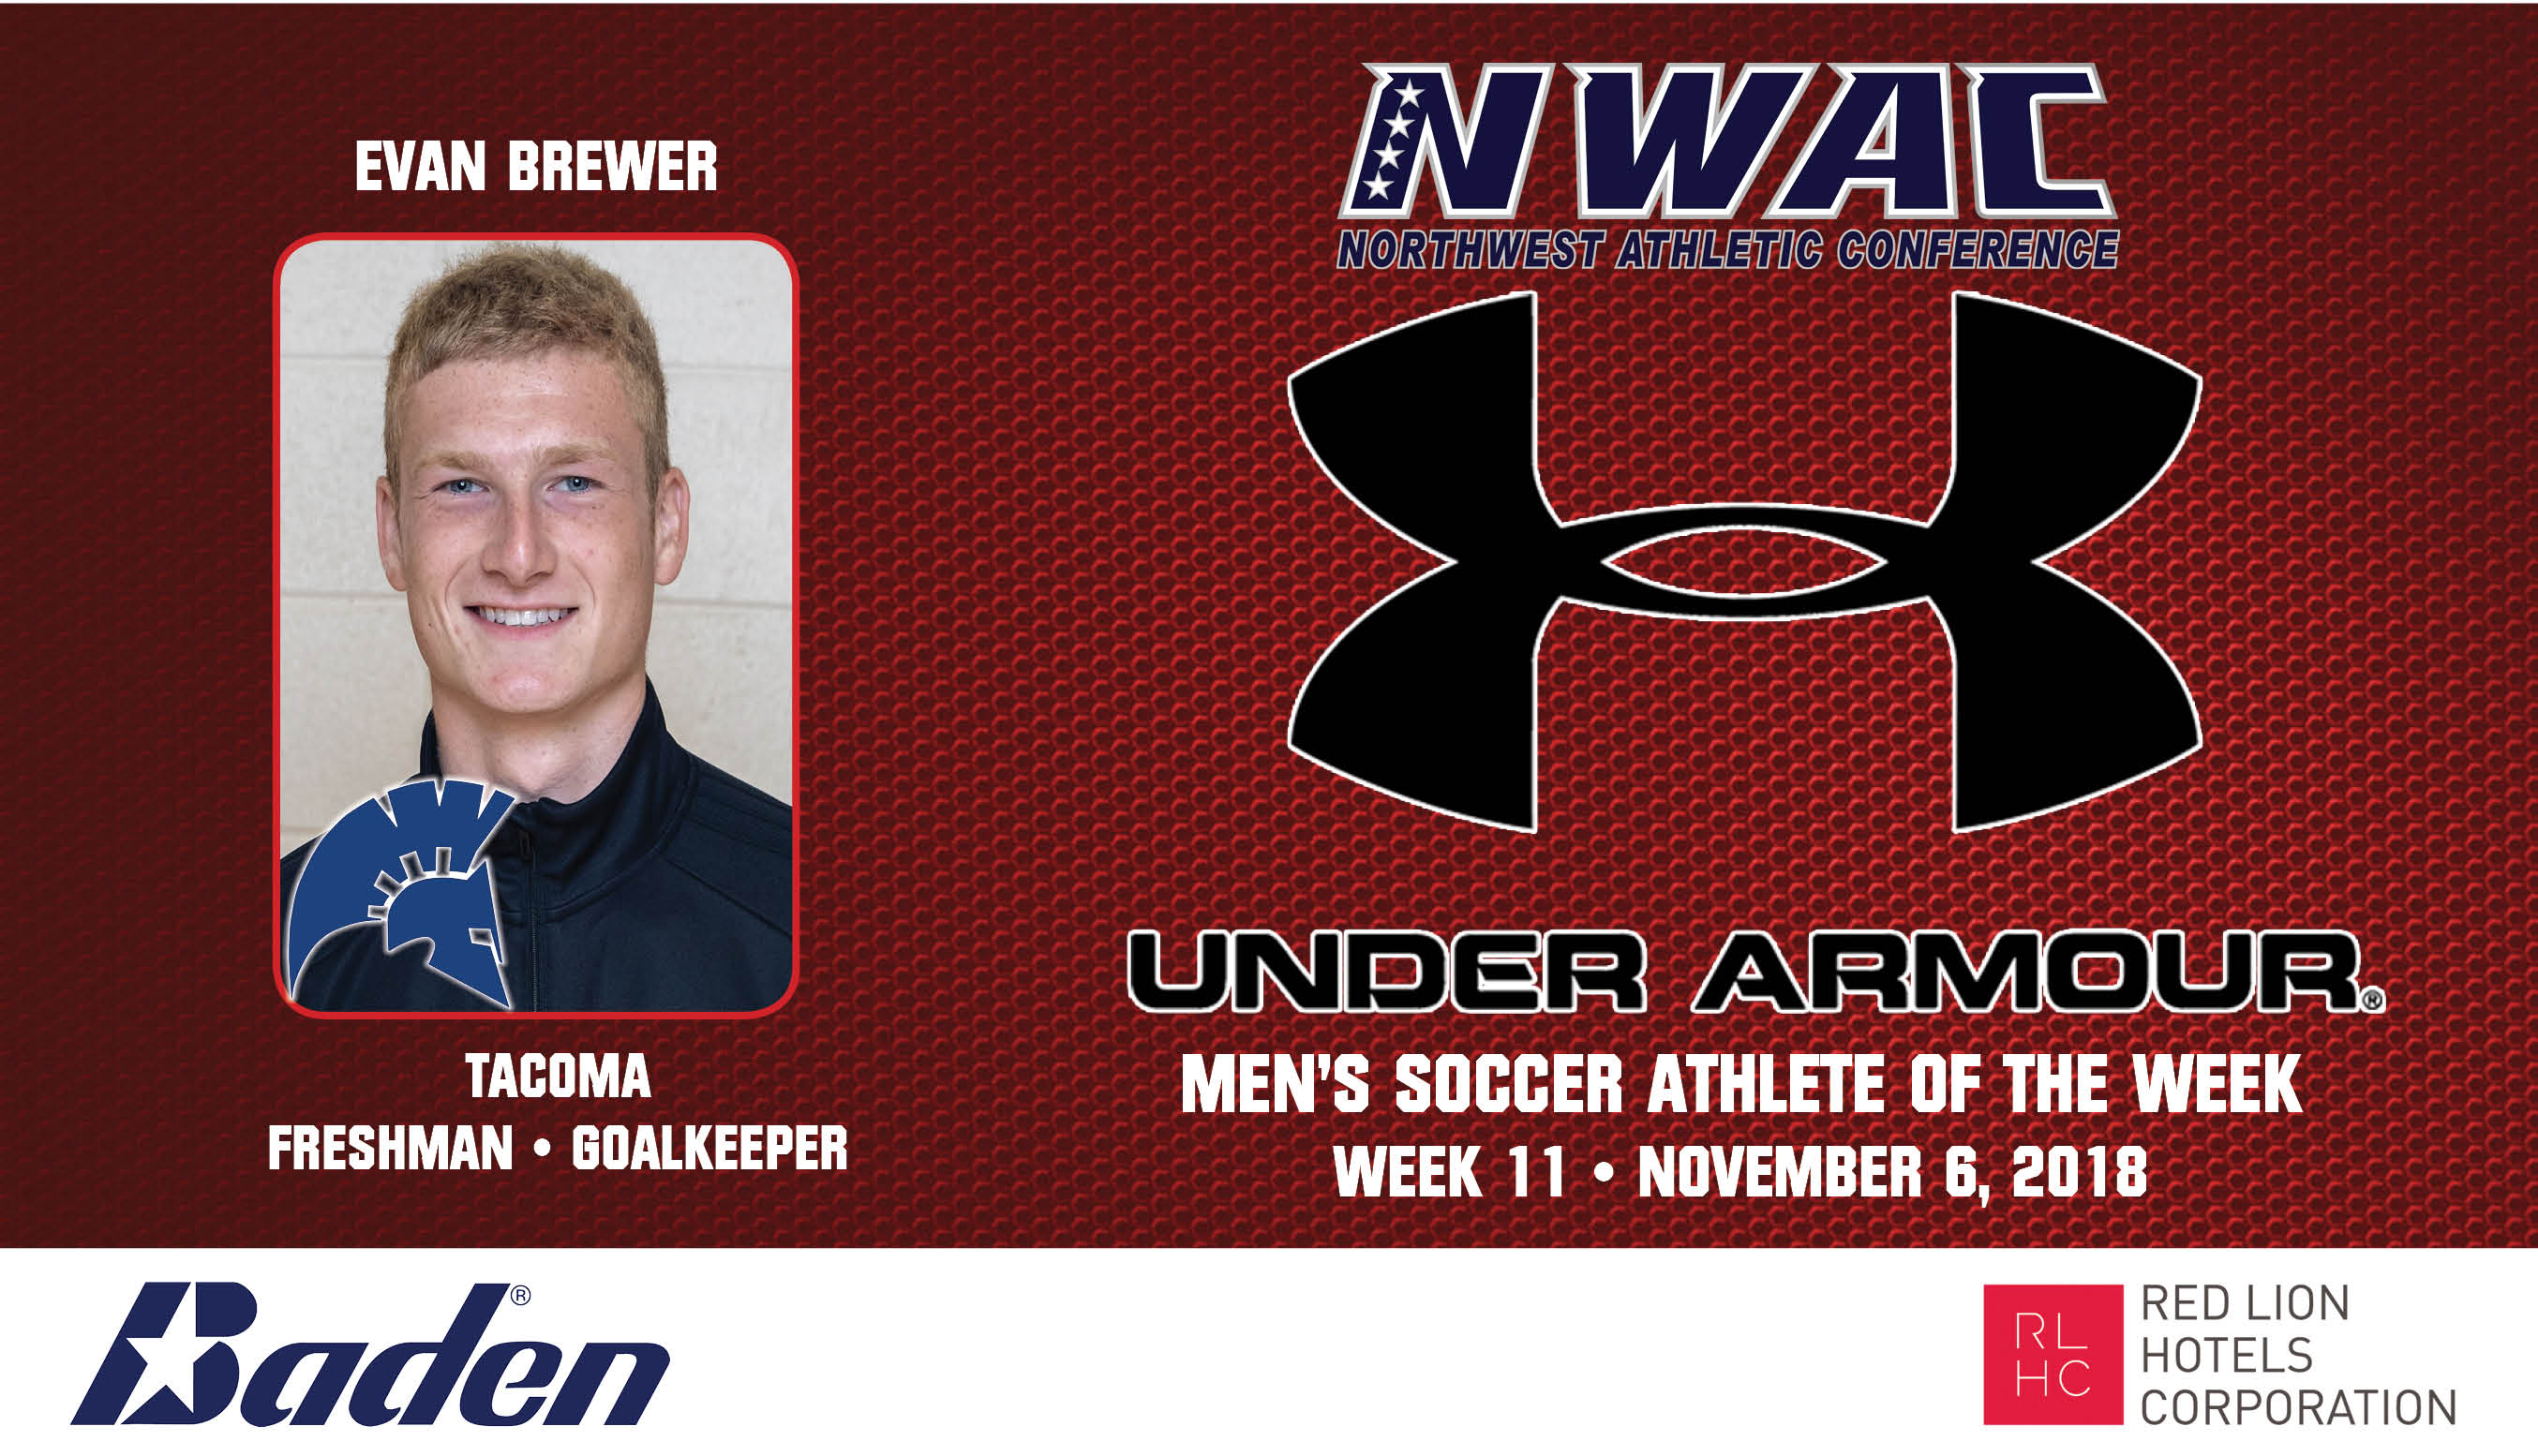 Evan Brewer Armour Athlete of the Week graphic